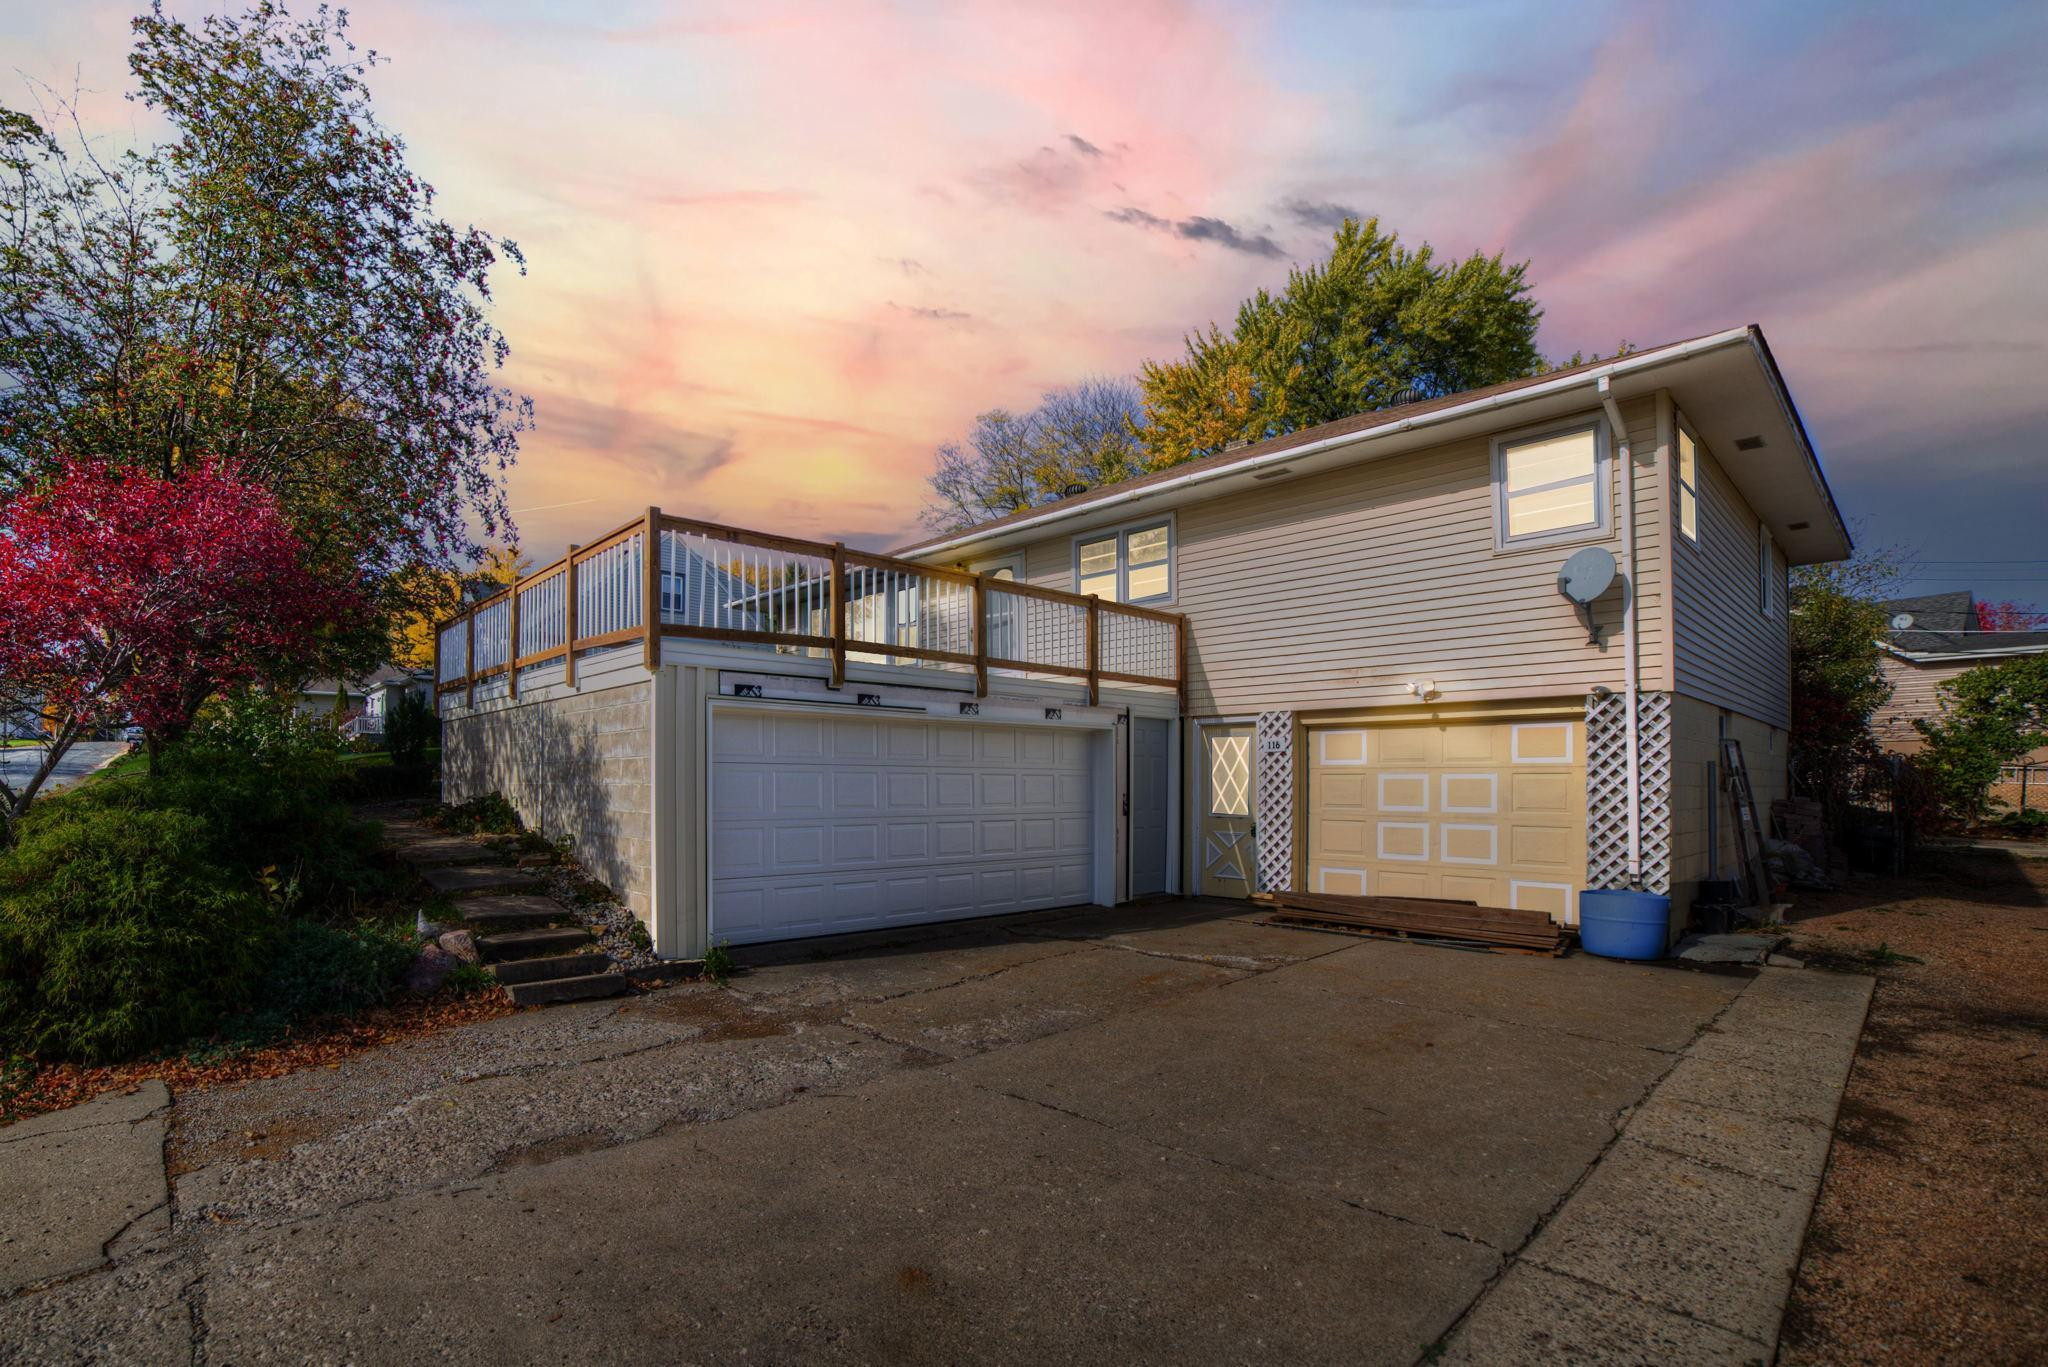 Wonderful 3 bed, 2 bath, 3 car garage home on a full blooming lot with gardens and a new, huge front deck!